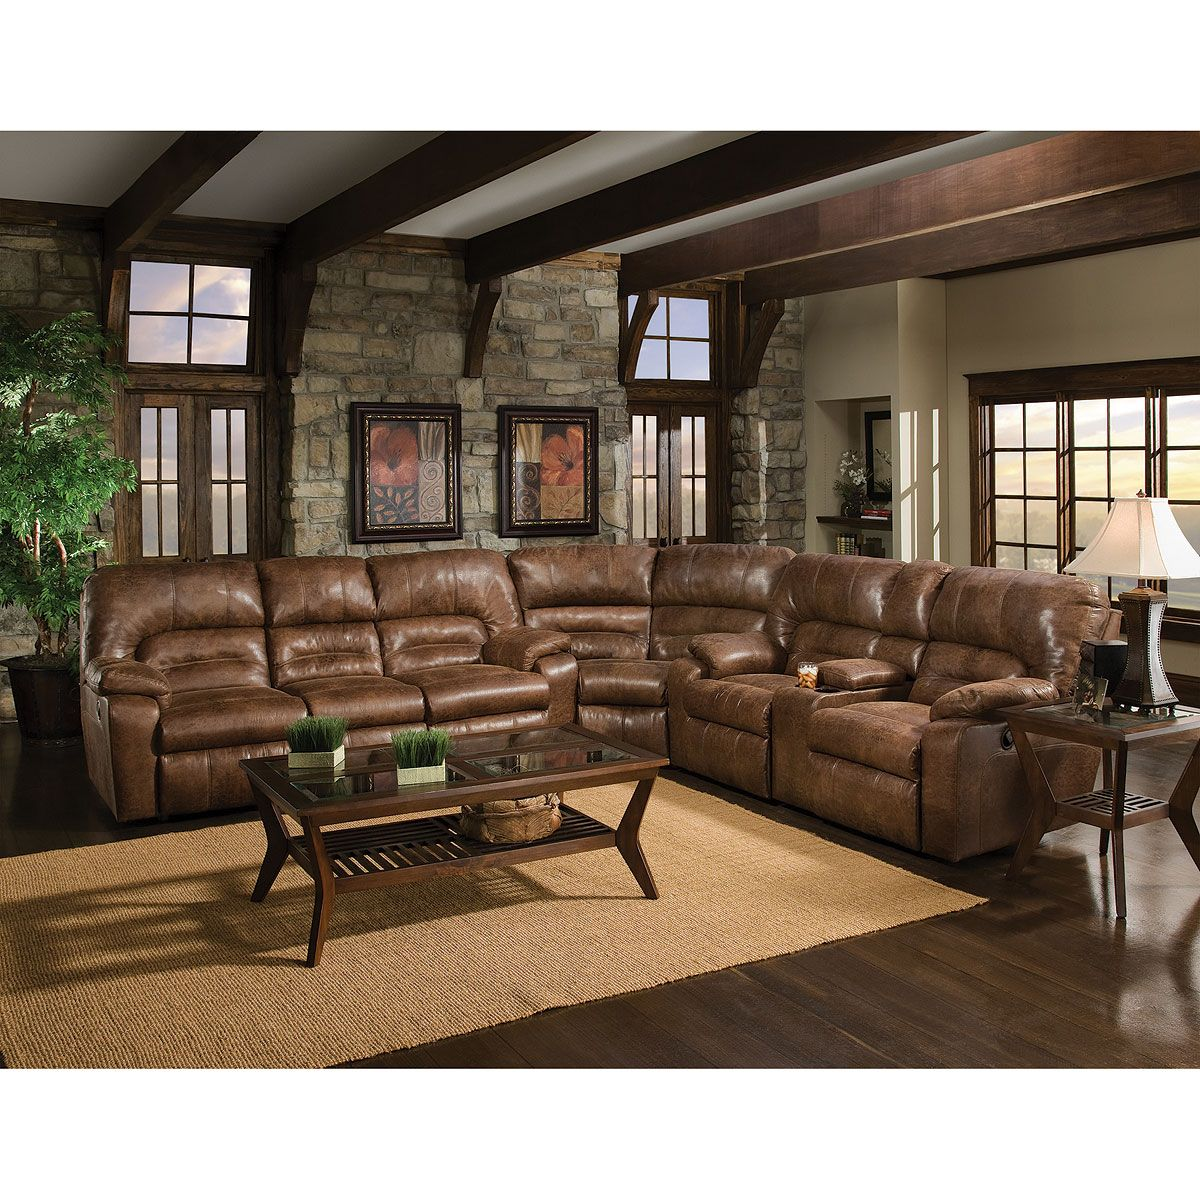 Brown Upholstered 3 Piece Sectional Luxury Furniture Stores